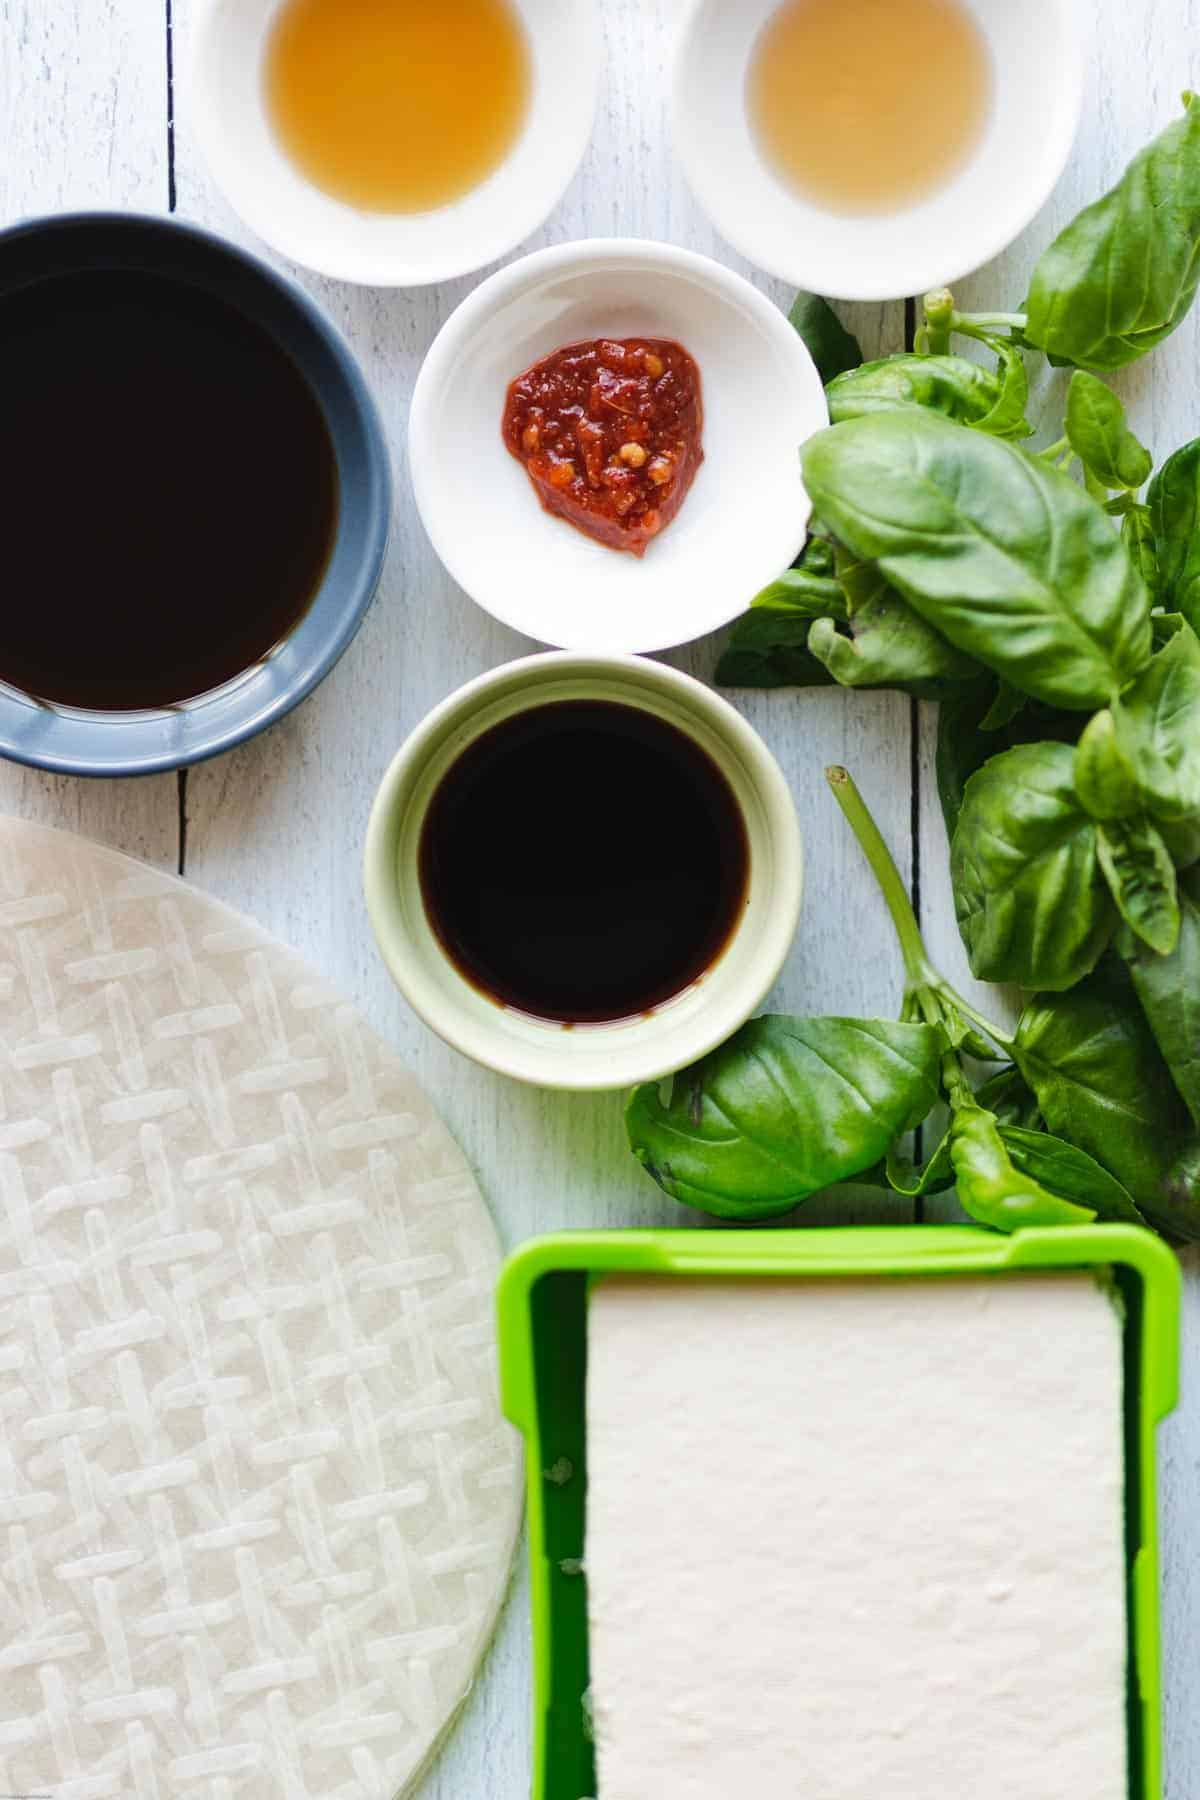 Ingredients for Easy Vegan No-Chop Dumplings: Rice paper, tofu, basil, sesame oil, ground ginger, coconut aminos, soy sauce, maple syrup, and chili garlic sauce.